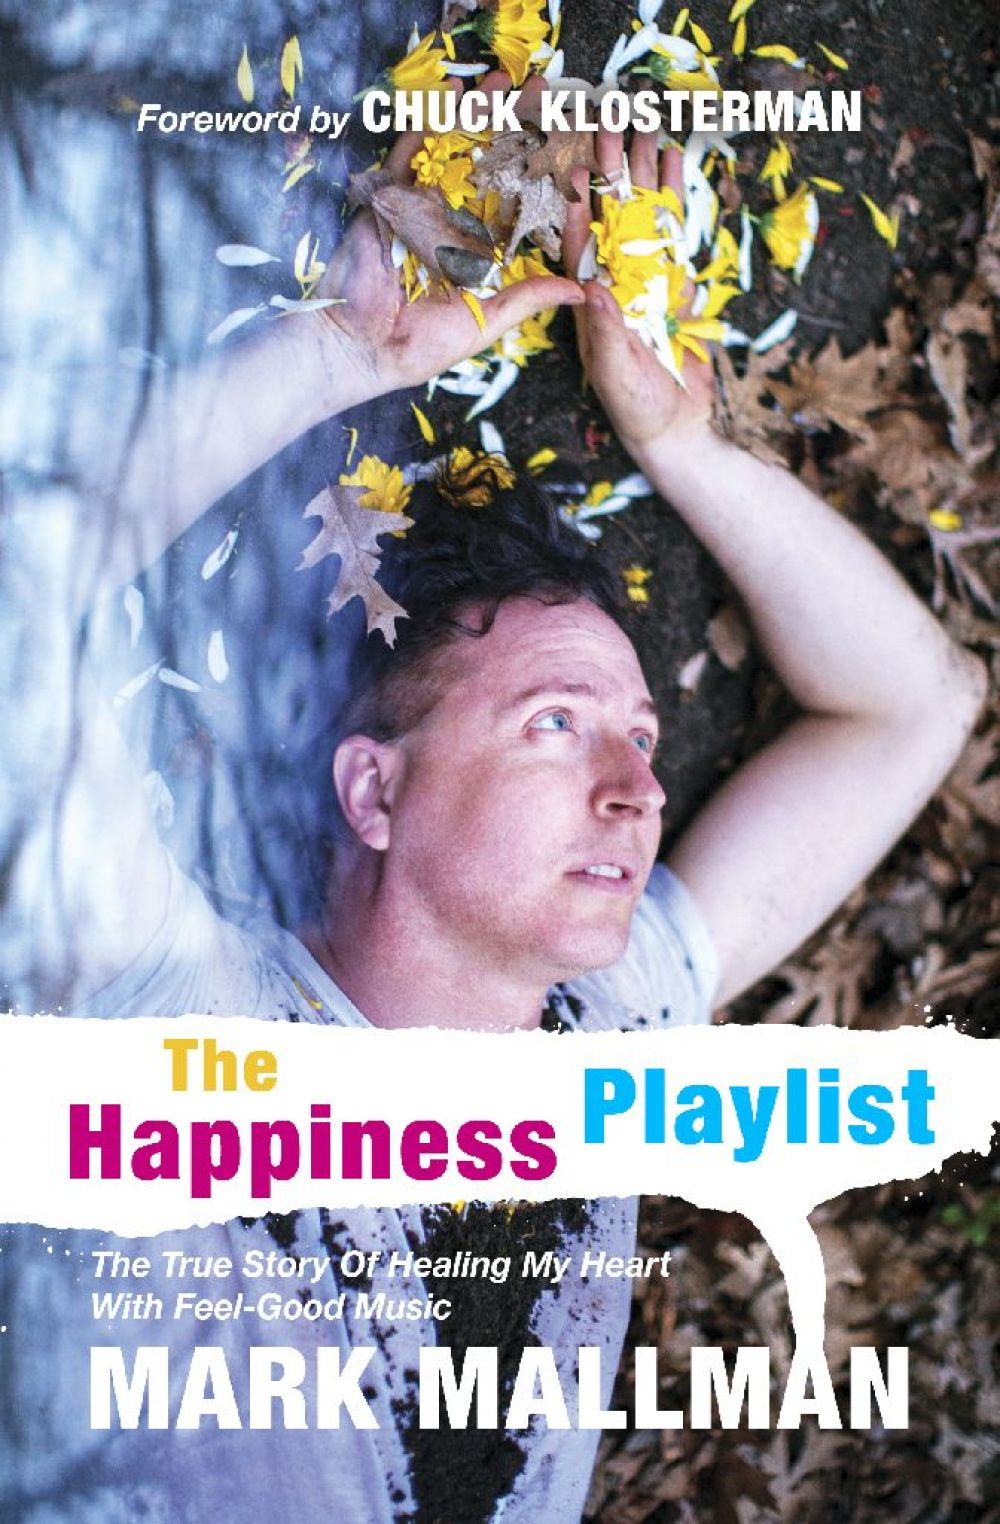 Download Mark Mallman's Classic Album, The End is Not the End and read his followup BOOK, The Happiness Playlist